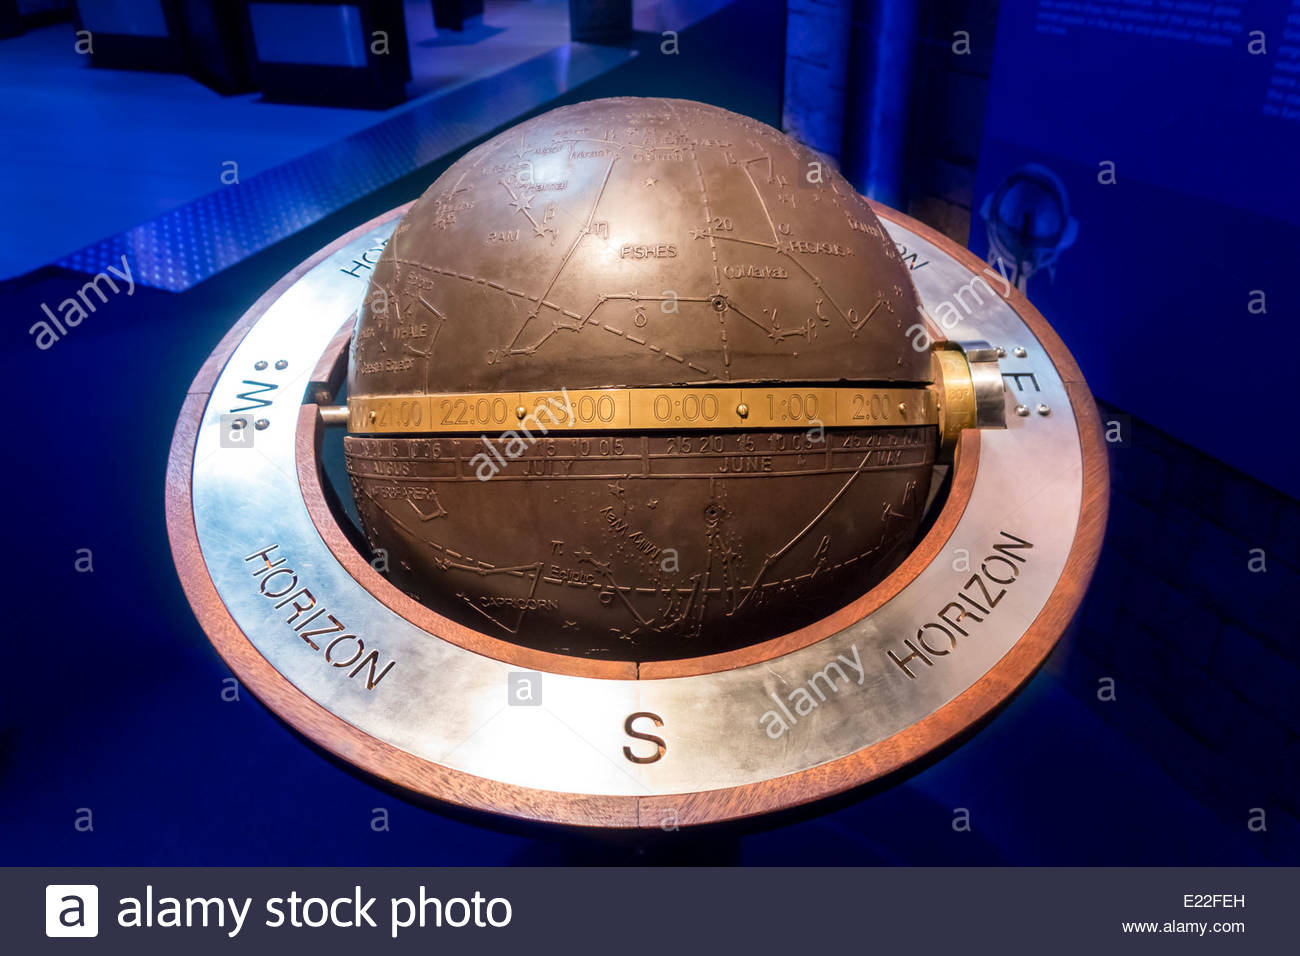 celestial-globe-plots-position-of-the-st